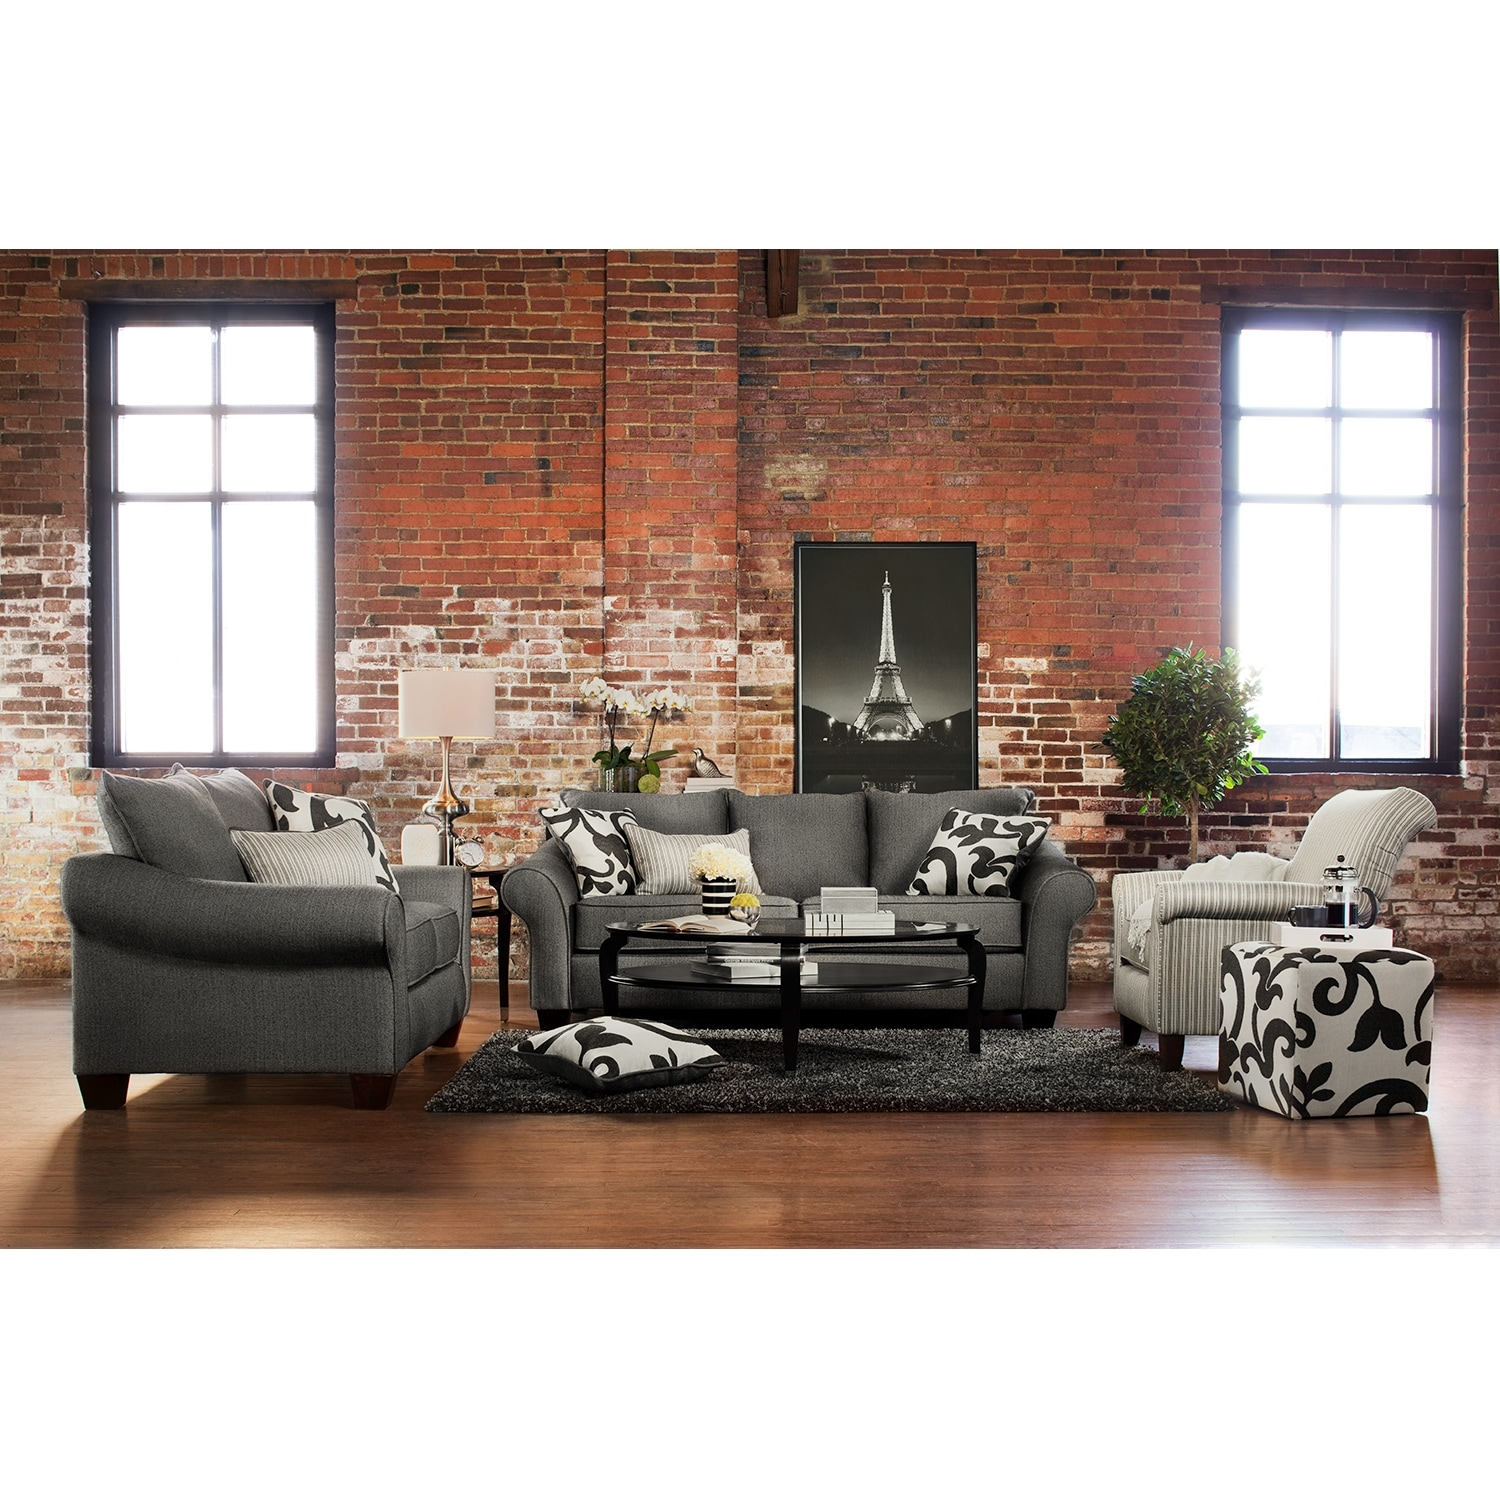 Colette Sofa and Loveseat Set Gray